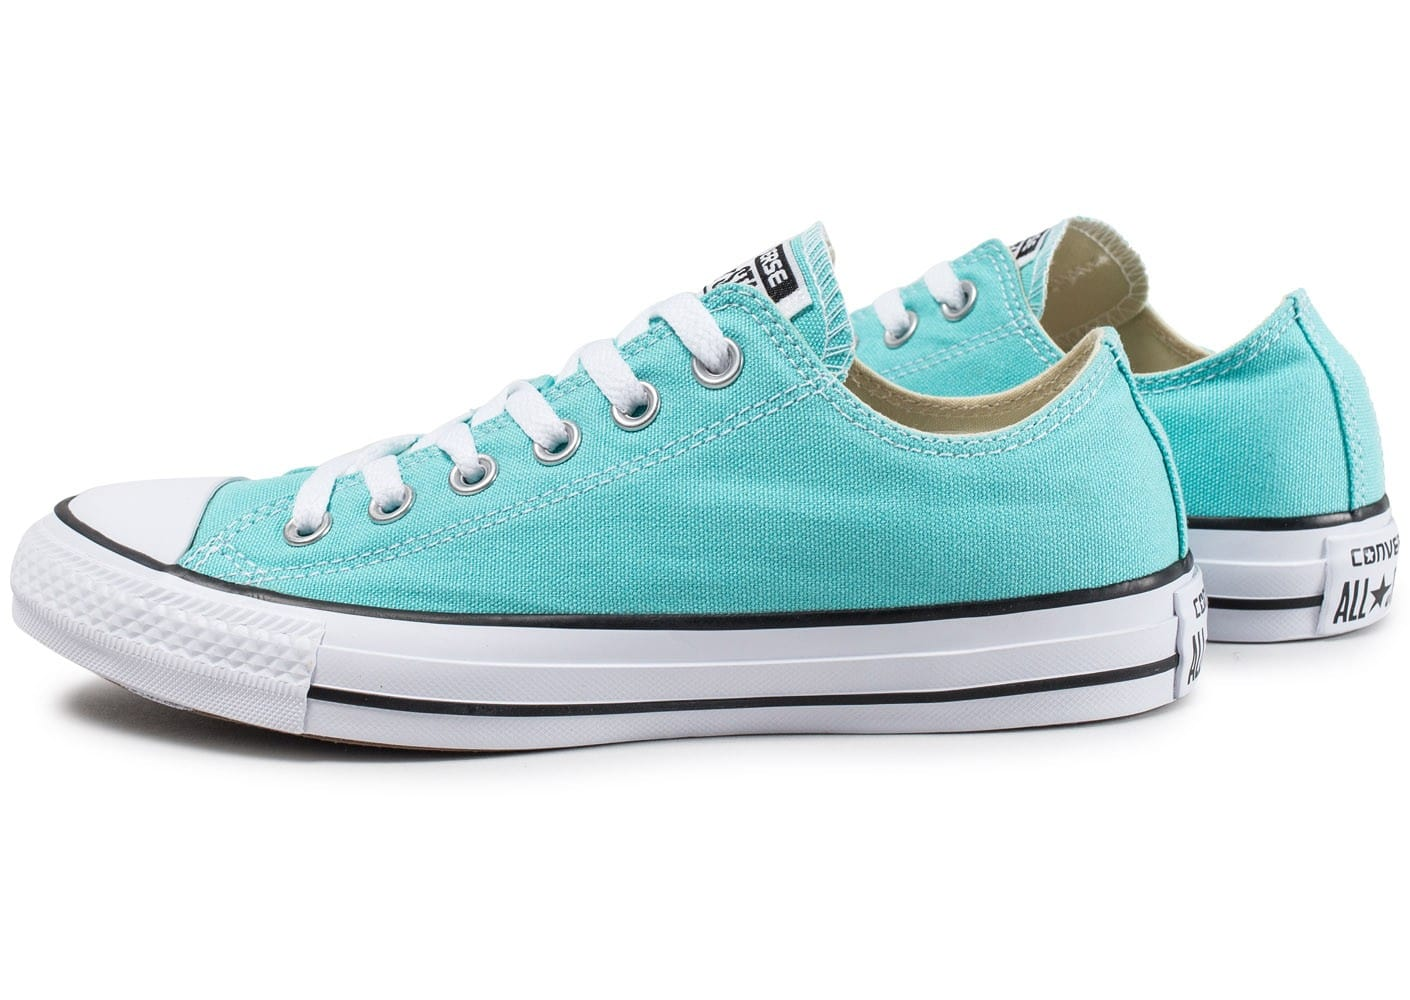 converse chuck taylor all star turquoise